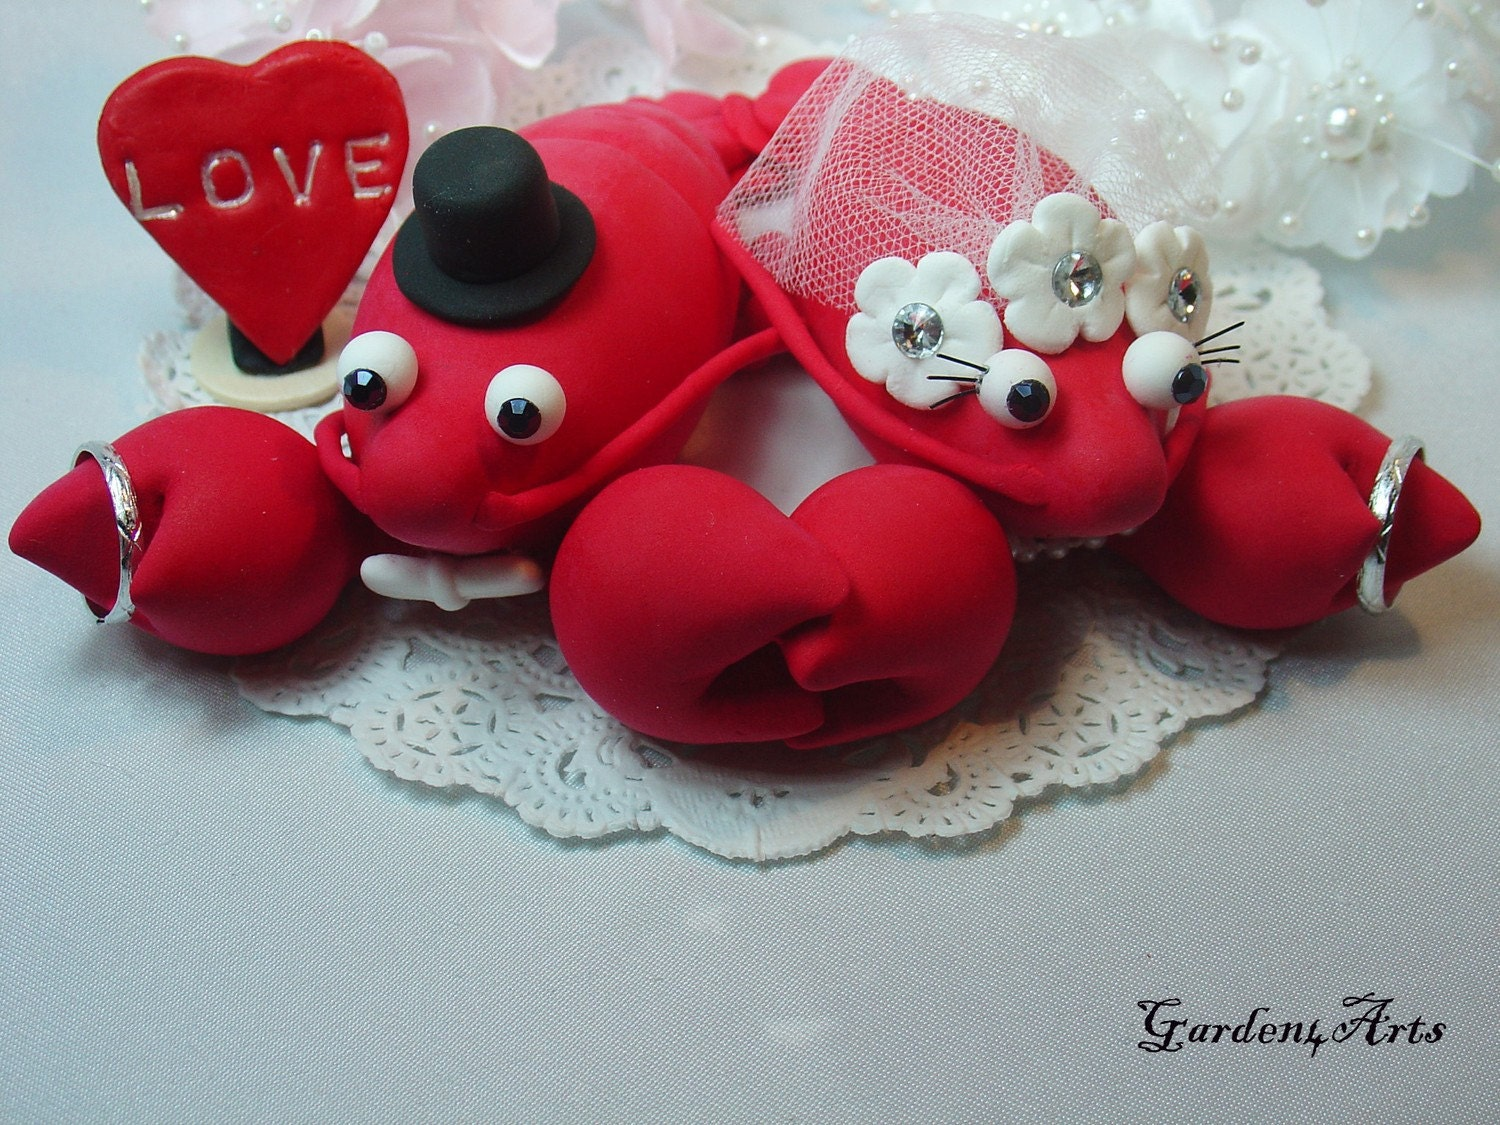 Red Lobster Love Wedding Cake Topper HAND HOLD HAND with